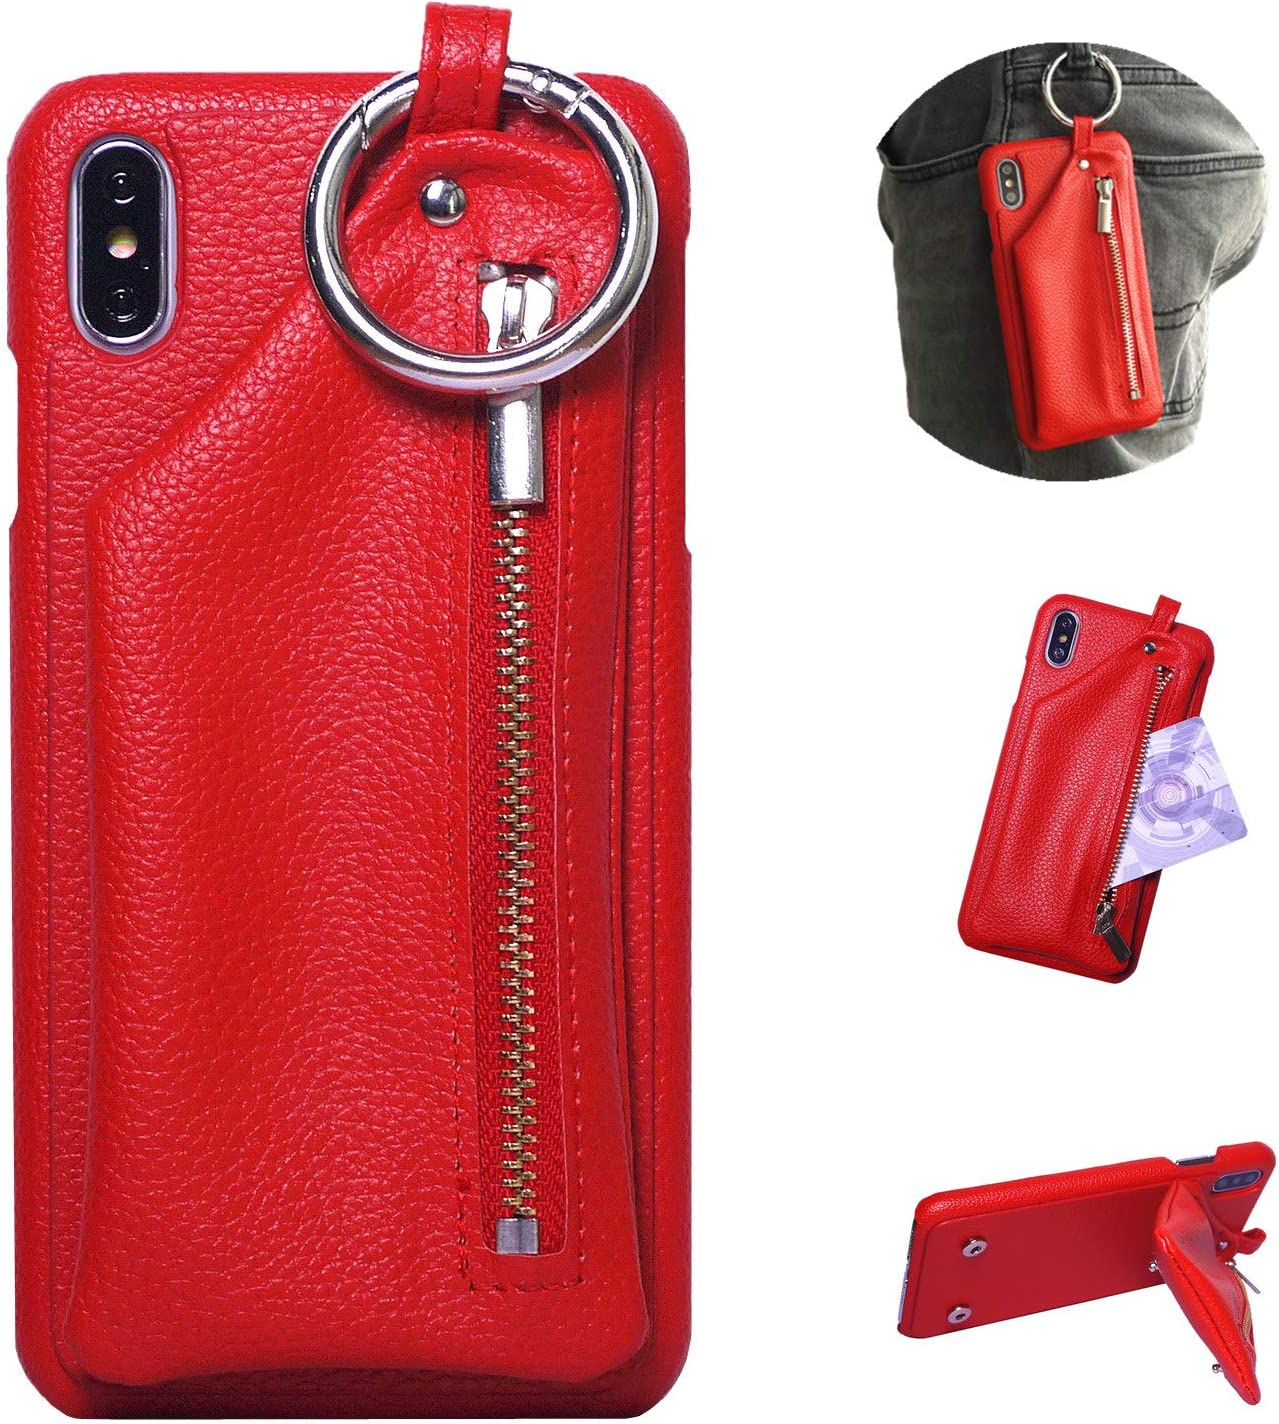 iPhone 6s Plus Case, iPhone 6 Plus Case, DMaos Leather Case with Zipper Pocket for AirPods Earphone Cash Card Holder, Stylish Fashion Buckle, Premium for iPhone 5.5 inch - Red